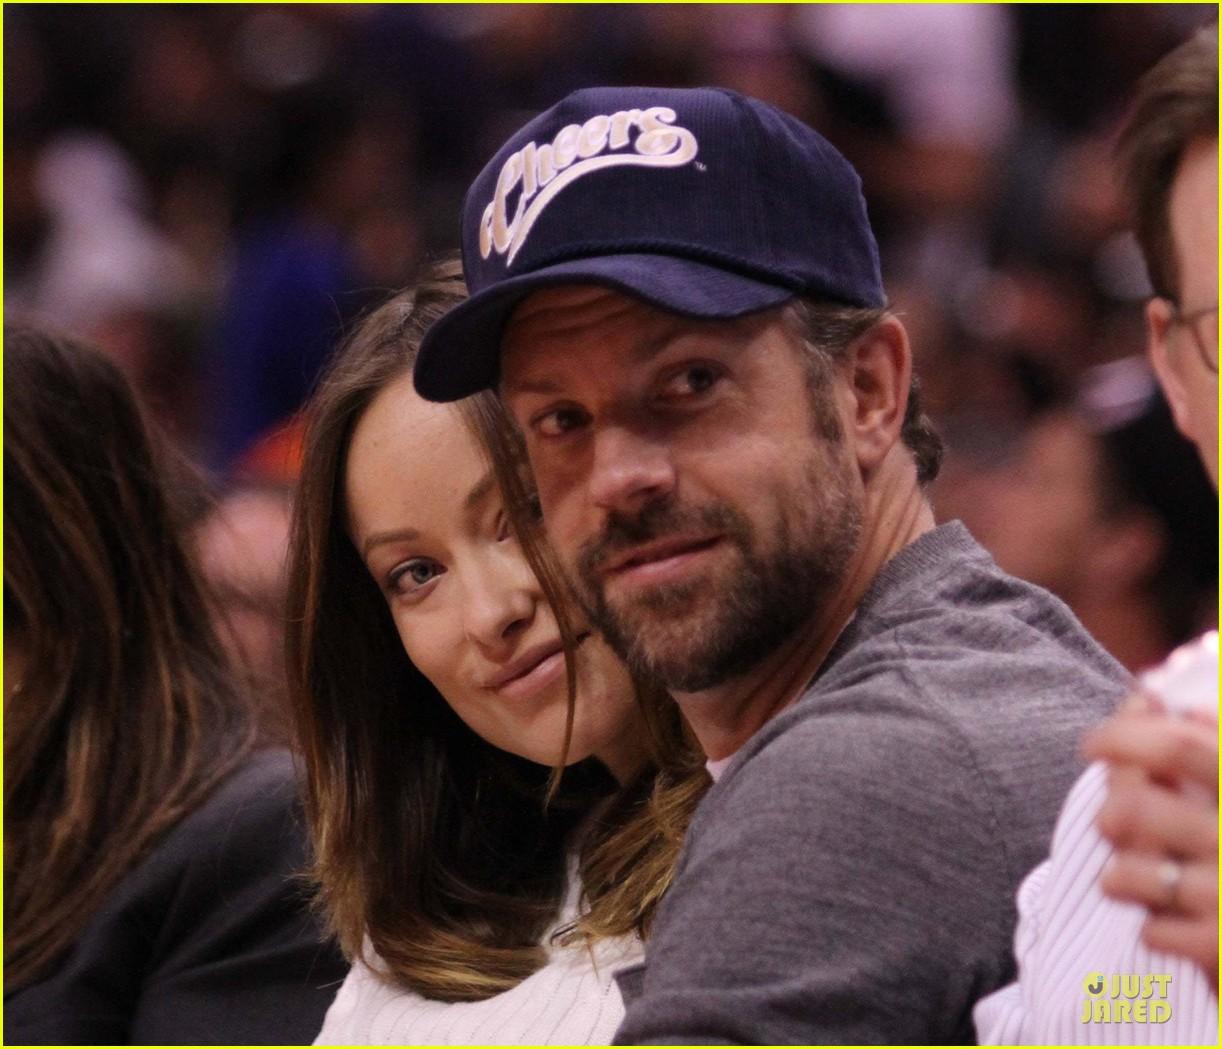 olivia wilde jason sudeikis passionately kiss at clippers game 193056111